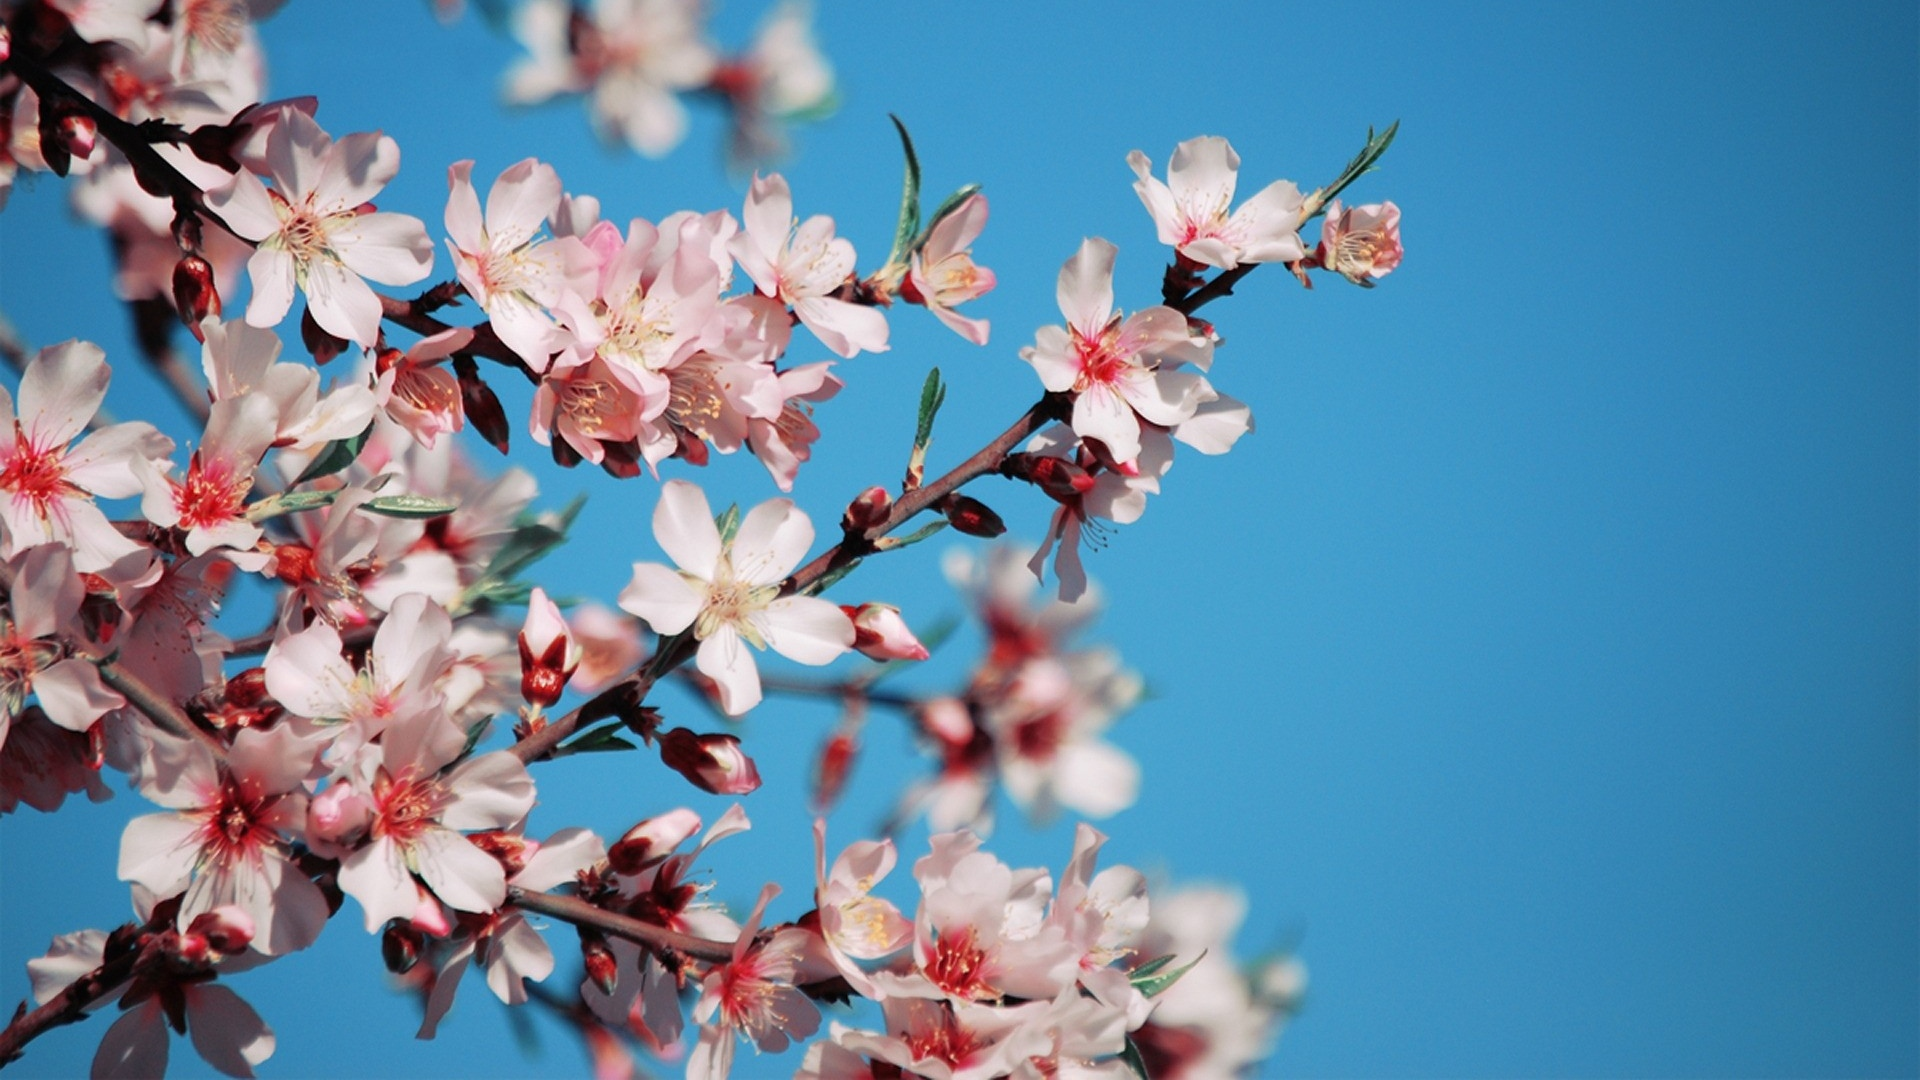 Download Wallpaper 1920x1080 Blossom Flower Pink Bright Blue